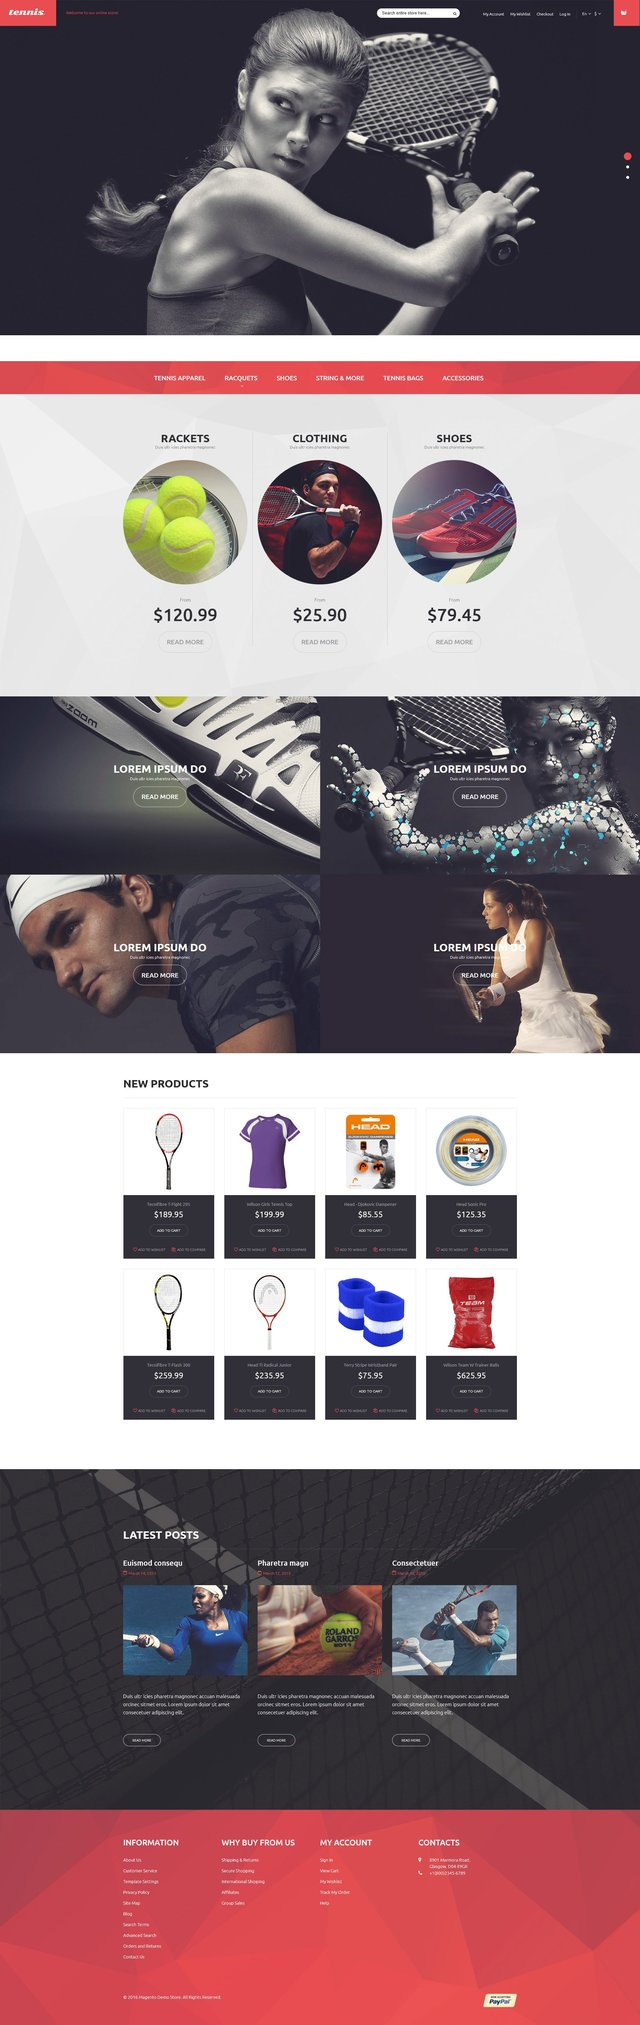 Tennis Equipment Bootstrap Magento Template